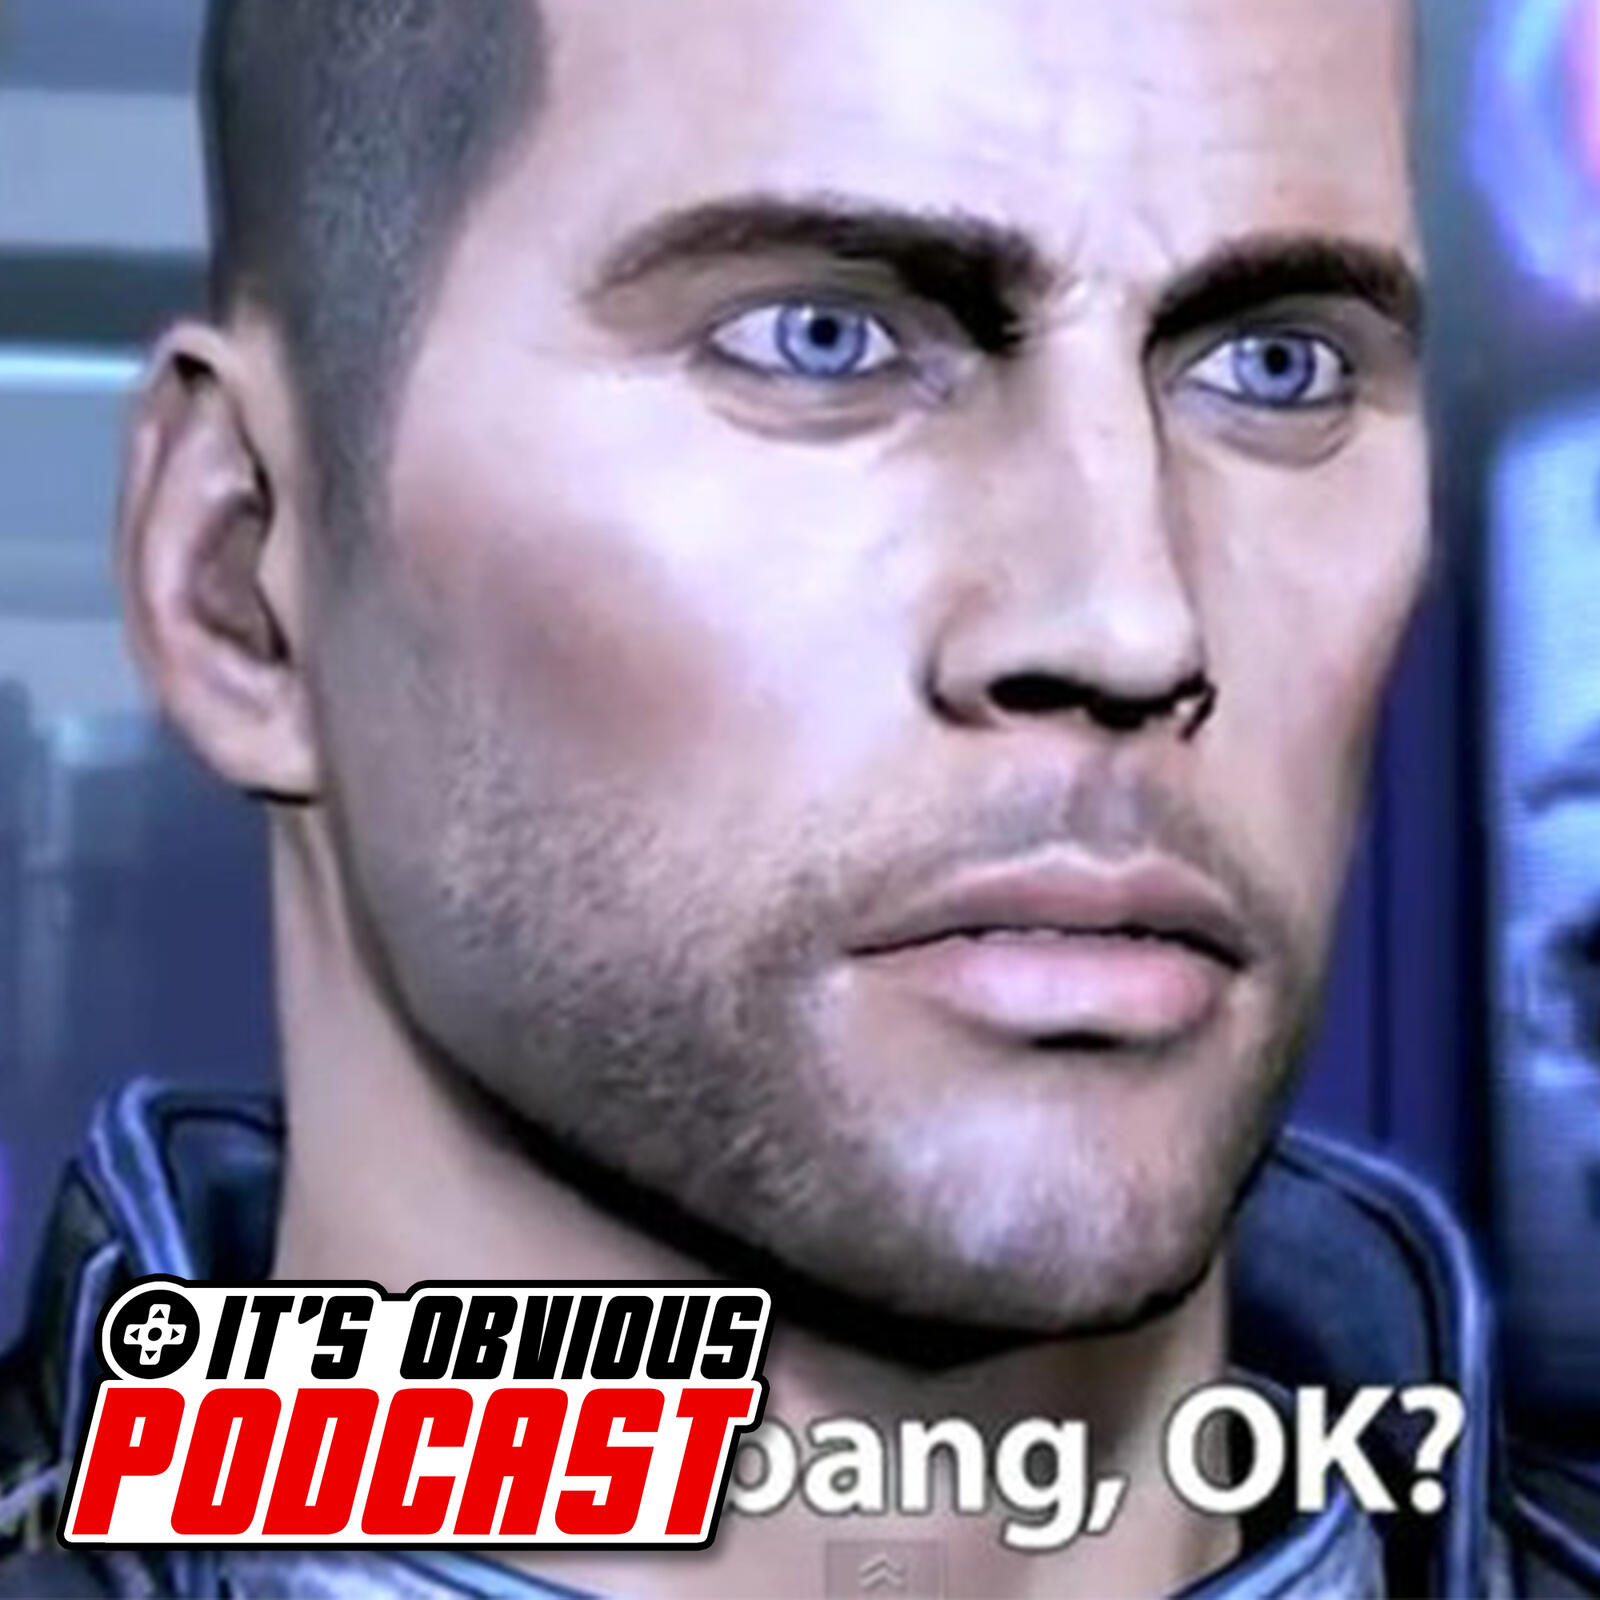 Mass Effect & The Guilt of Playing Video Games